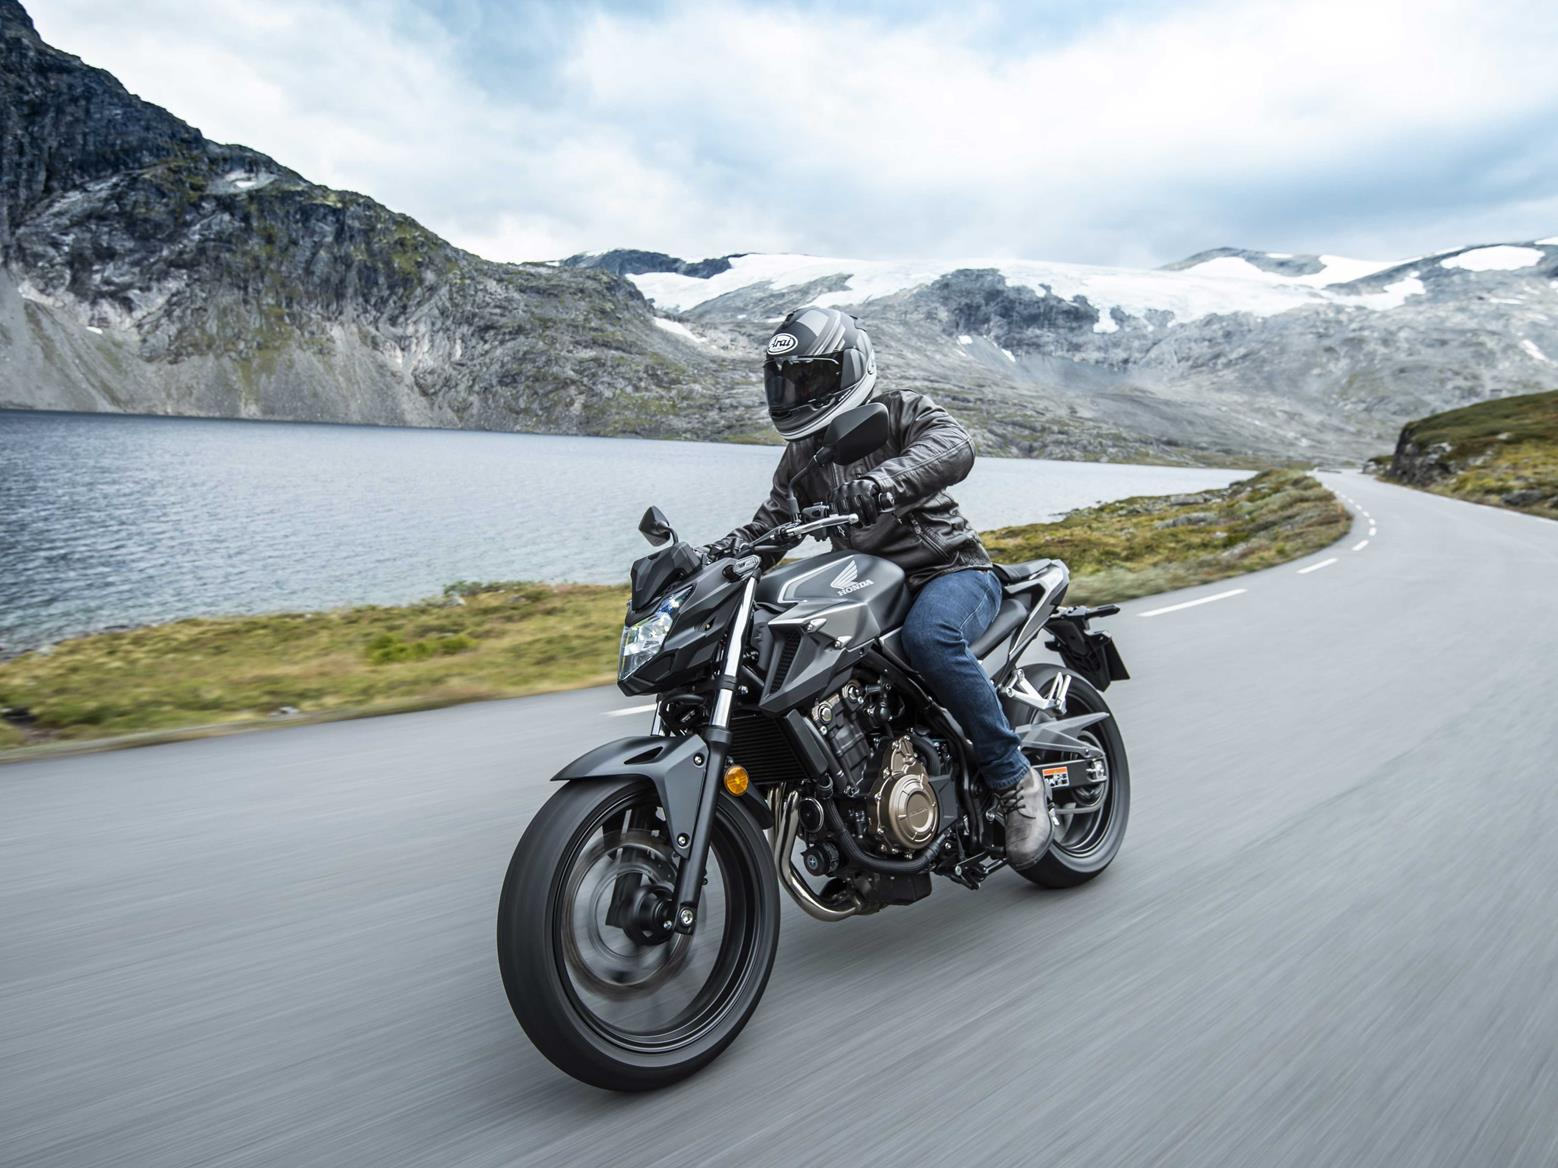 Reliable, affordable and decent enough performance has win the Honda CB500F many friends